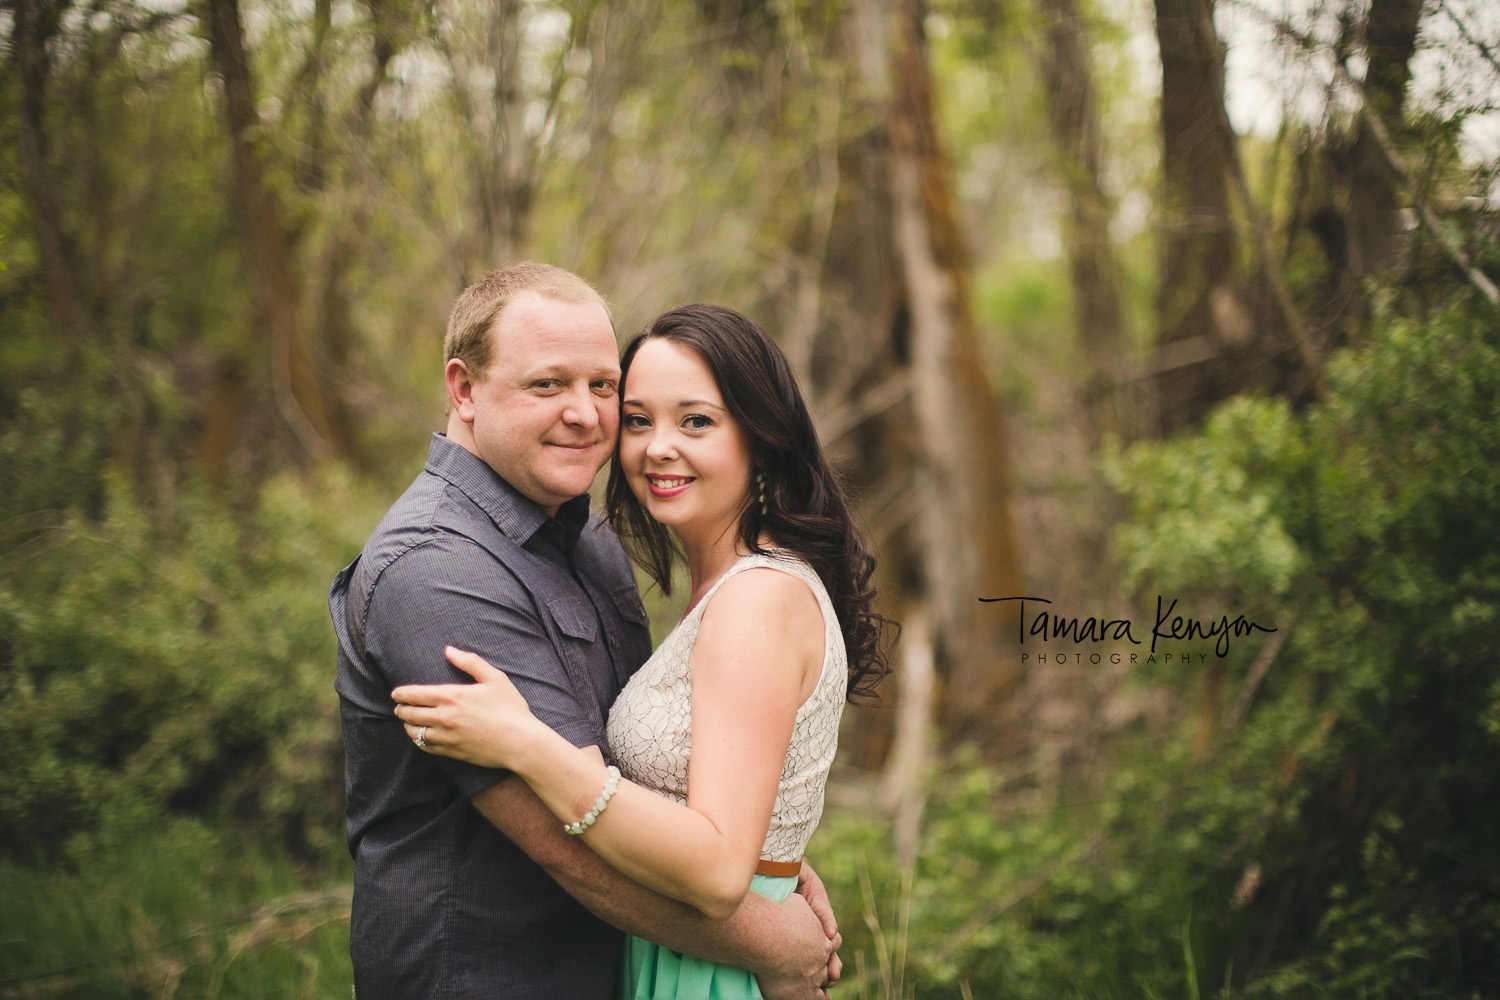 Wedding Photographer in Boise Idaho